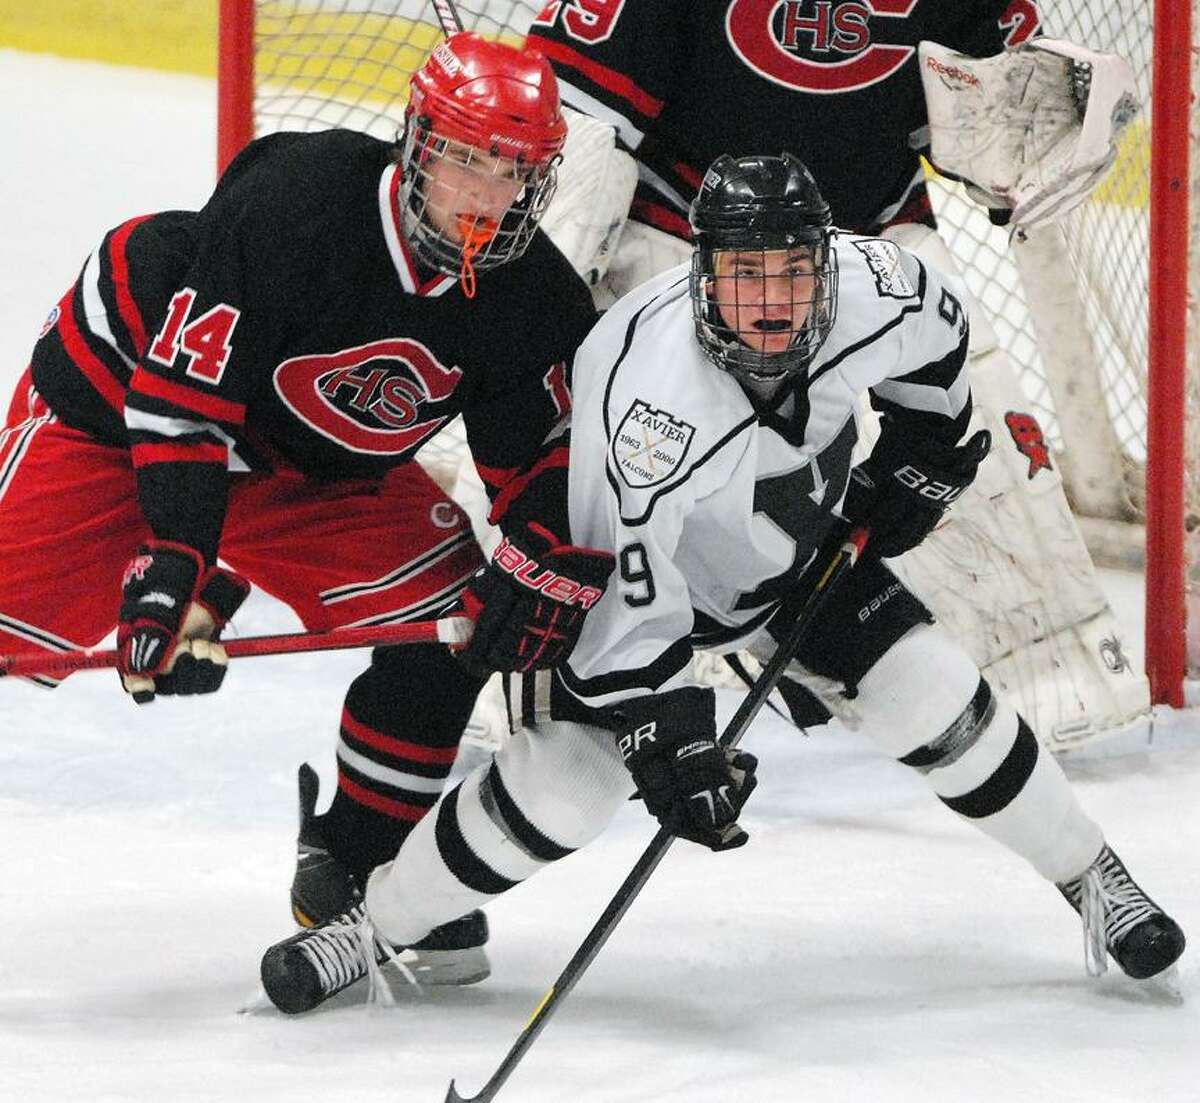 Catherine Avalone/The Middletown PressXavier junior defender John Burkinshaw battles Cheshire junior Dan Purslow Wednesday night at goal at the Wesleyan's Spurrier-Snyder Rink at Freeman Athletic Center in Middletown. The Xavier Falcons defeated the Cheshire Rams 3-1.